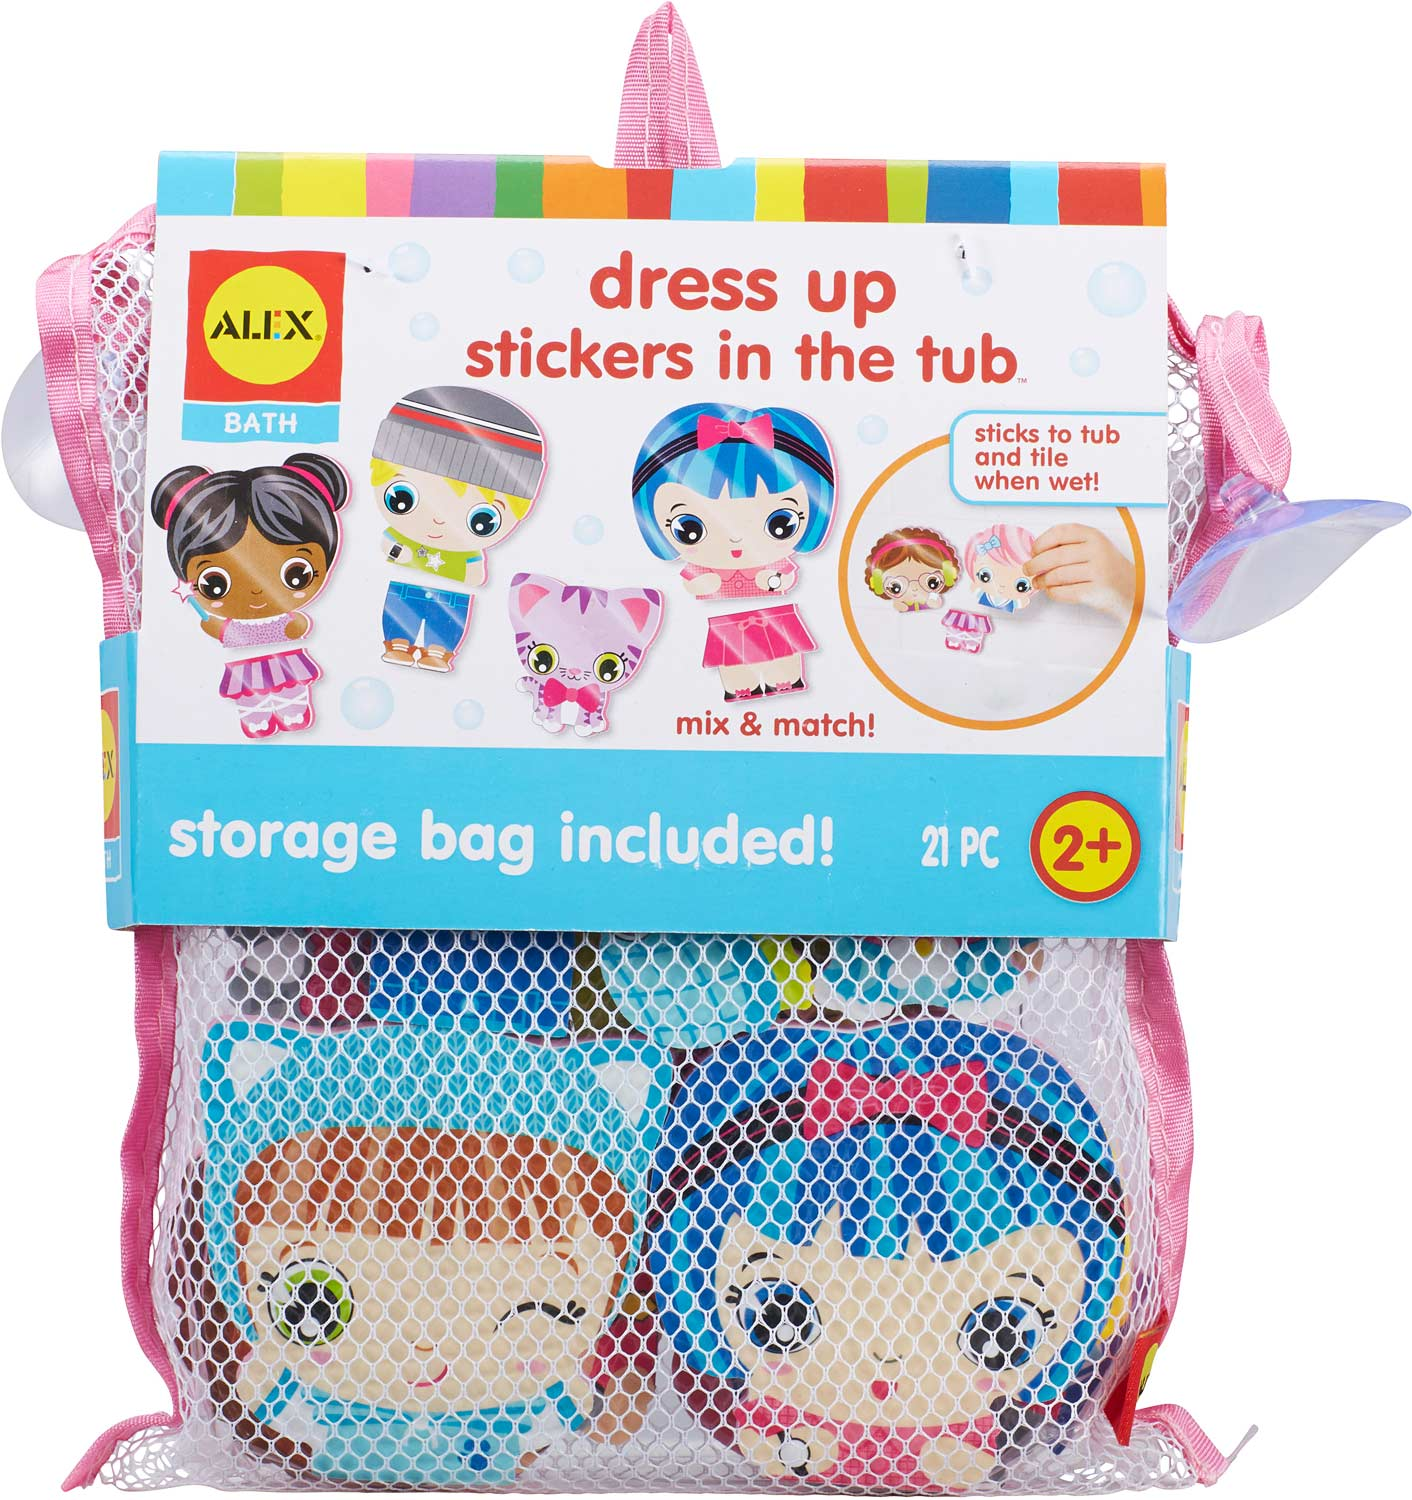 ALEX Bath Dress Up Stickers in the Tub - The Wooden Toy